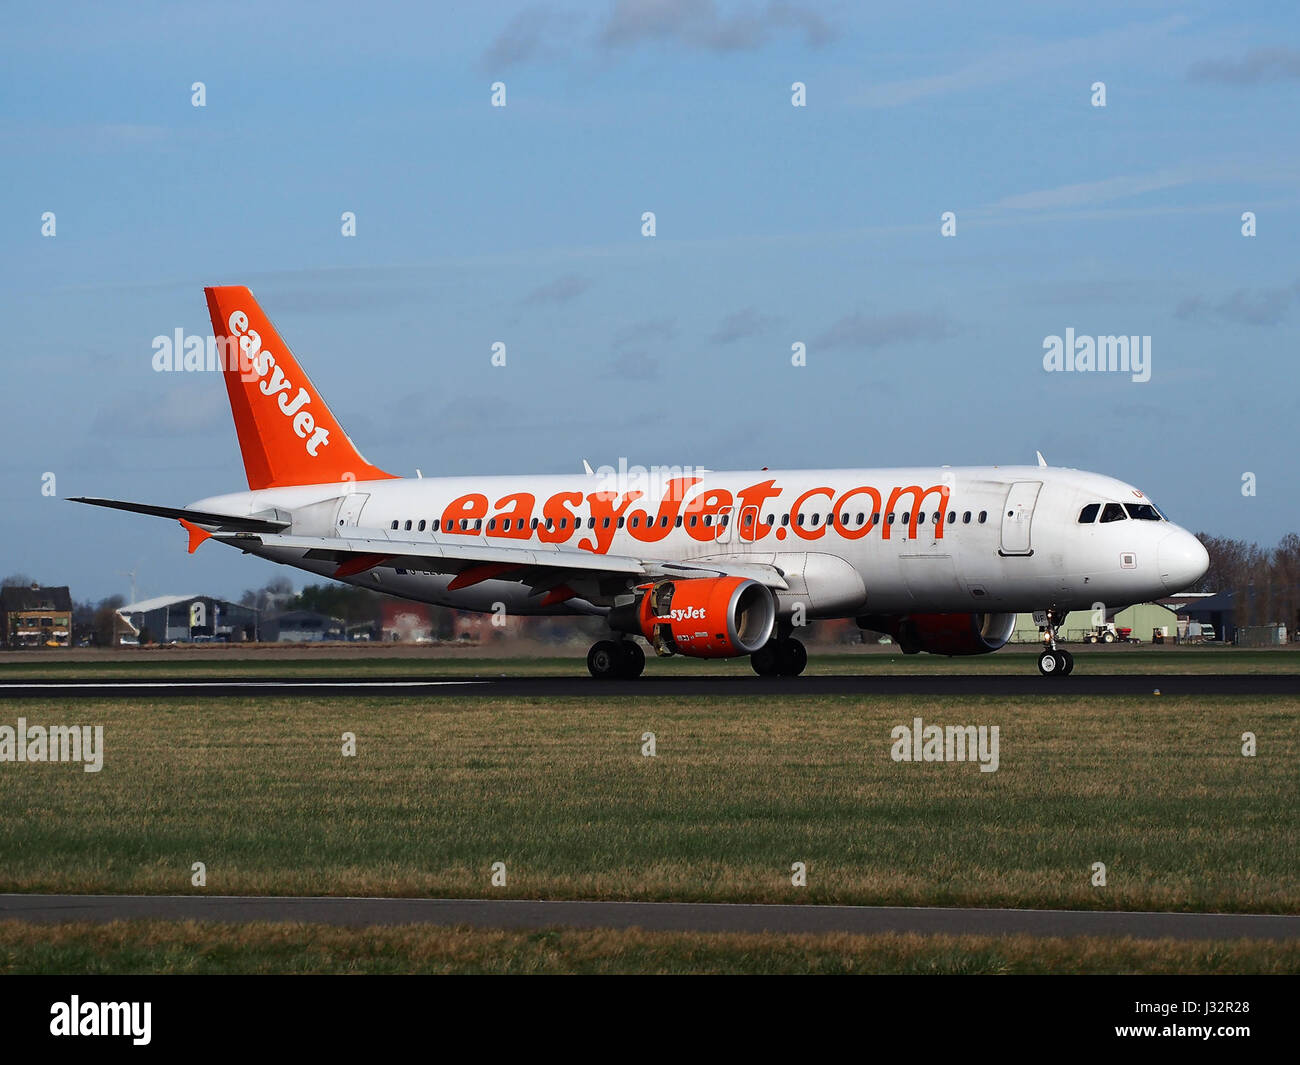 G-EZUF easyJet Airbus A320-214 cn4676 at Schiphol (AMS - EHAM), The Netherlands pic2 - Stock Image